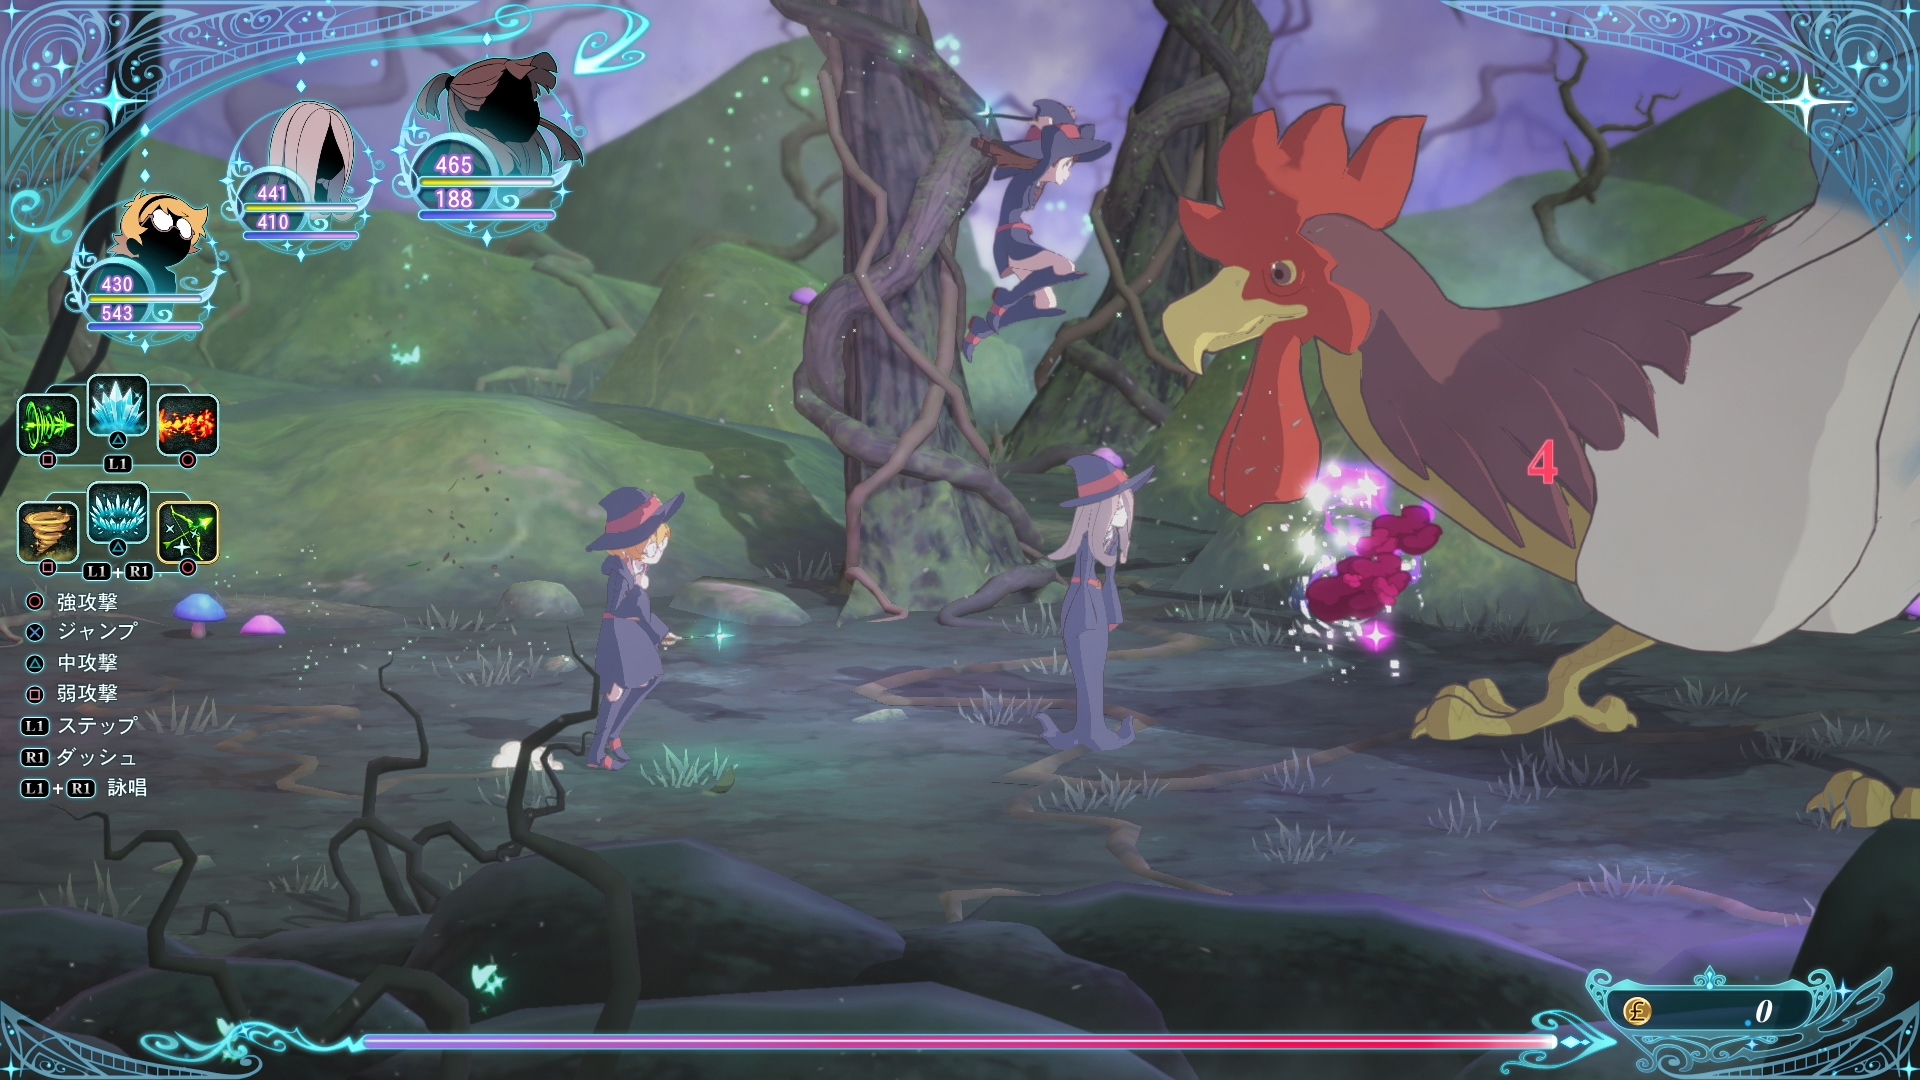 little-witch-academia-chamber-of-time-action-rpg-jrpg-bandai-namco-character-stats-playstation-ps4-pc_025.jpg